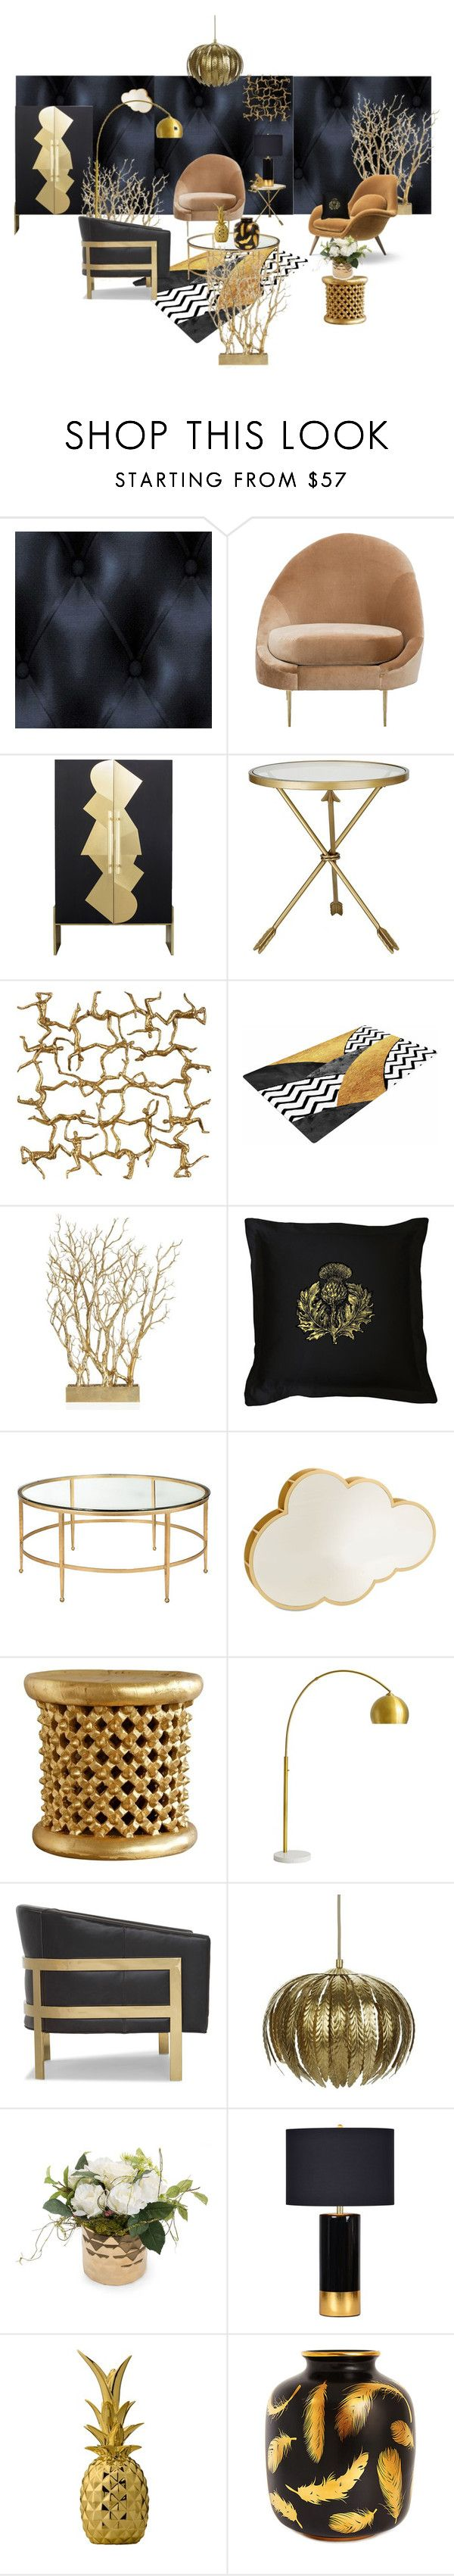 """Gentleman's club"" by studiodinteriors on Polyvore featuring interior, interiors, interior design, home, home decor, interior decorating, Astek, Uttermost, Timorous Beasties and Altreforme"